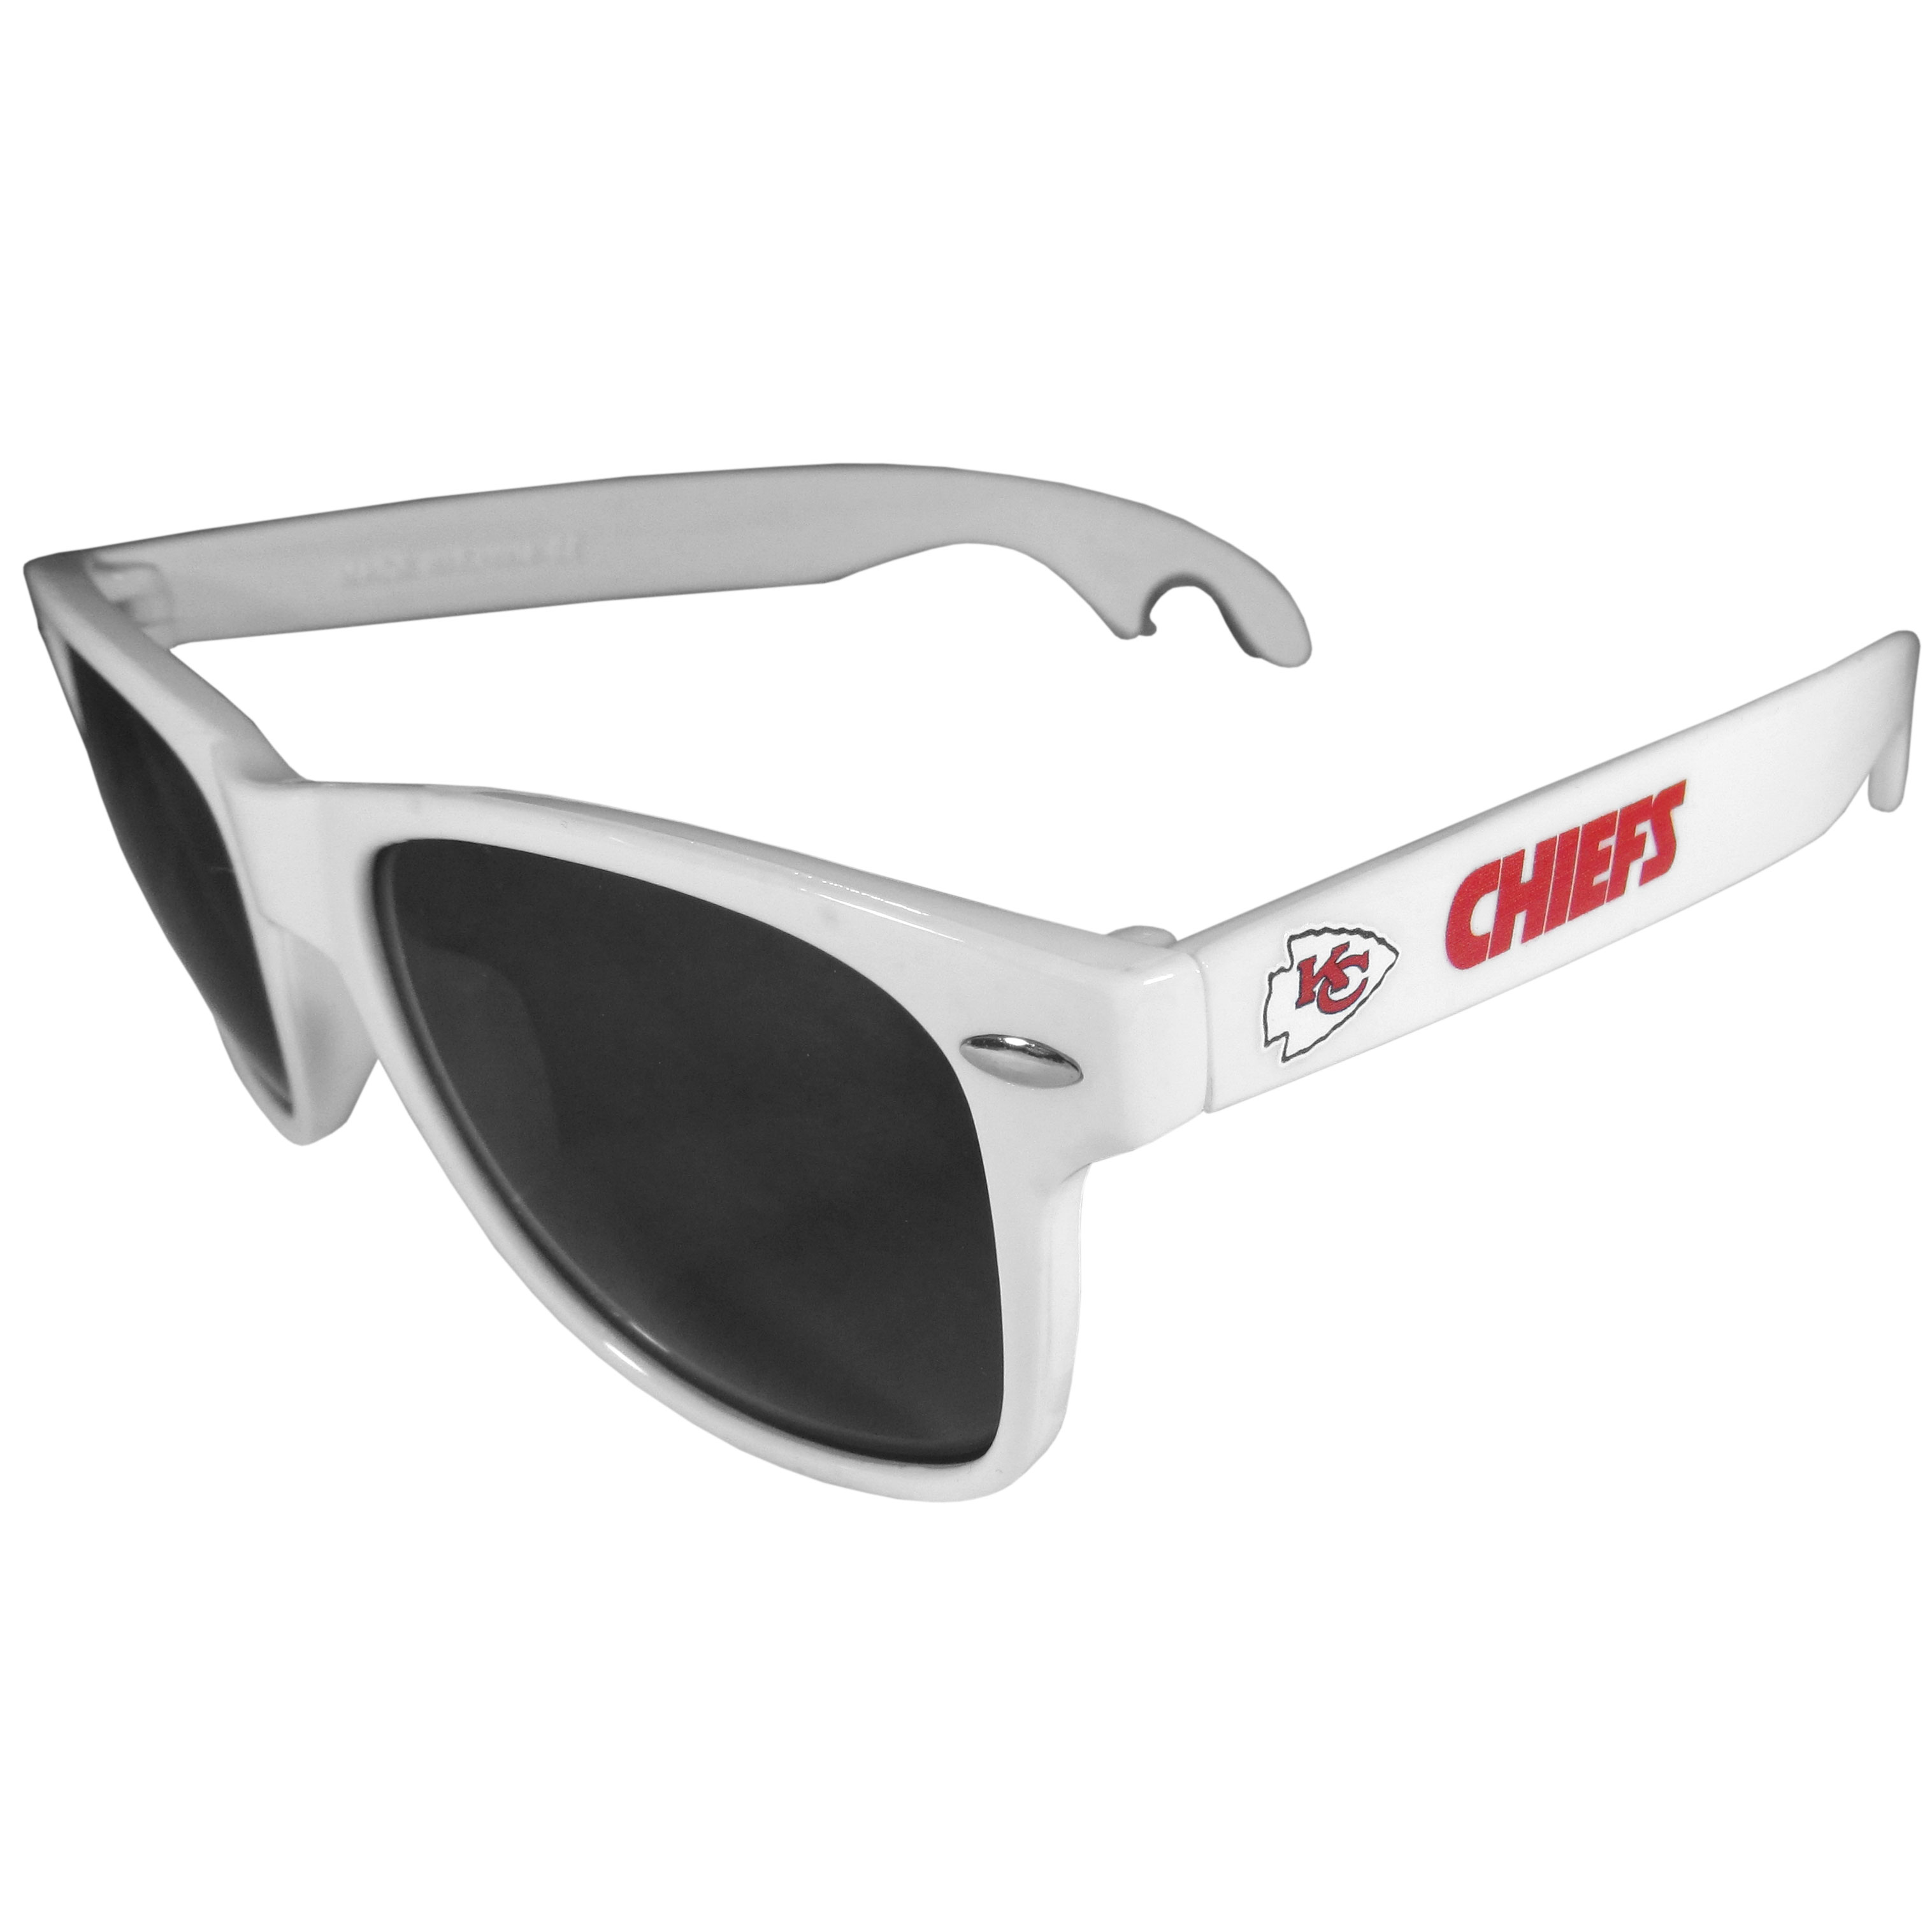 Kansas City Chiefs Beachfarer Bottle Opener Sunglasses, White - Seriously, these sunglasses open bottles! Keep the party going with these amazing Kansas City Chiefs bottle opener sunglasses. The stylish retro frames feature team designs on the arms and functional bottle openers on the end of the arms. Whether you are at the beach or having a backyard BBQ on game day, these shades will keep your eyes protected with 100% UVA/UVB protection and keep you hydrated with the handy bottle opener arms.